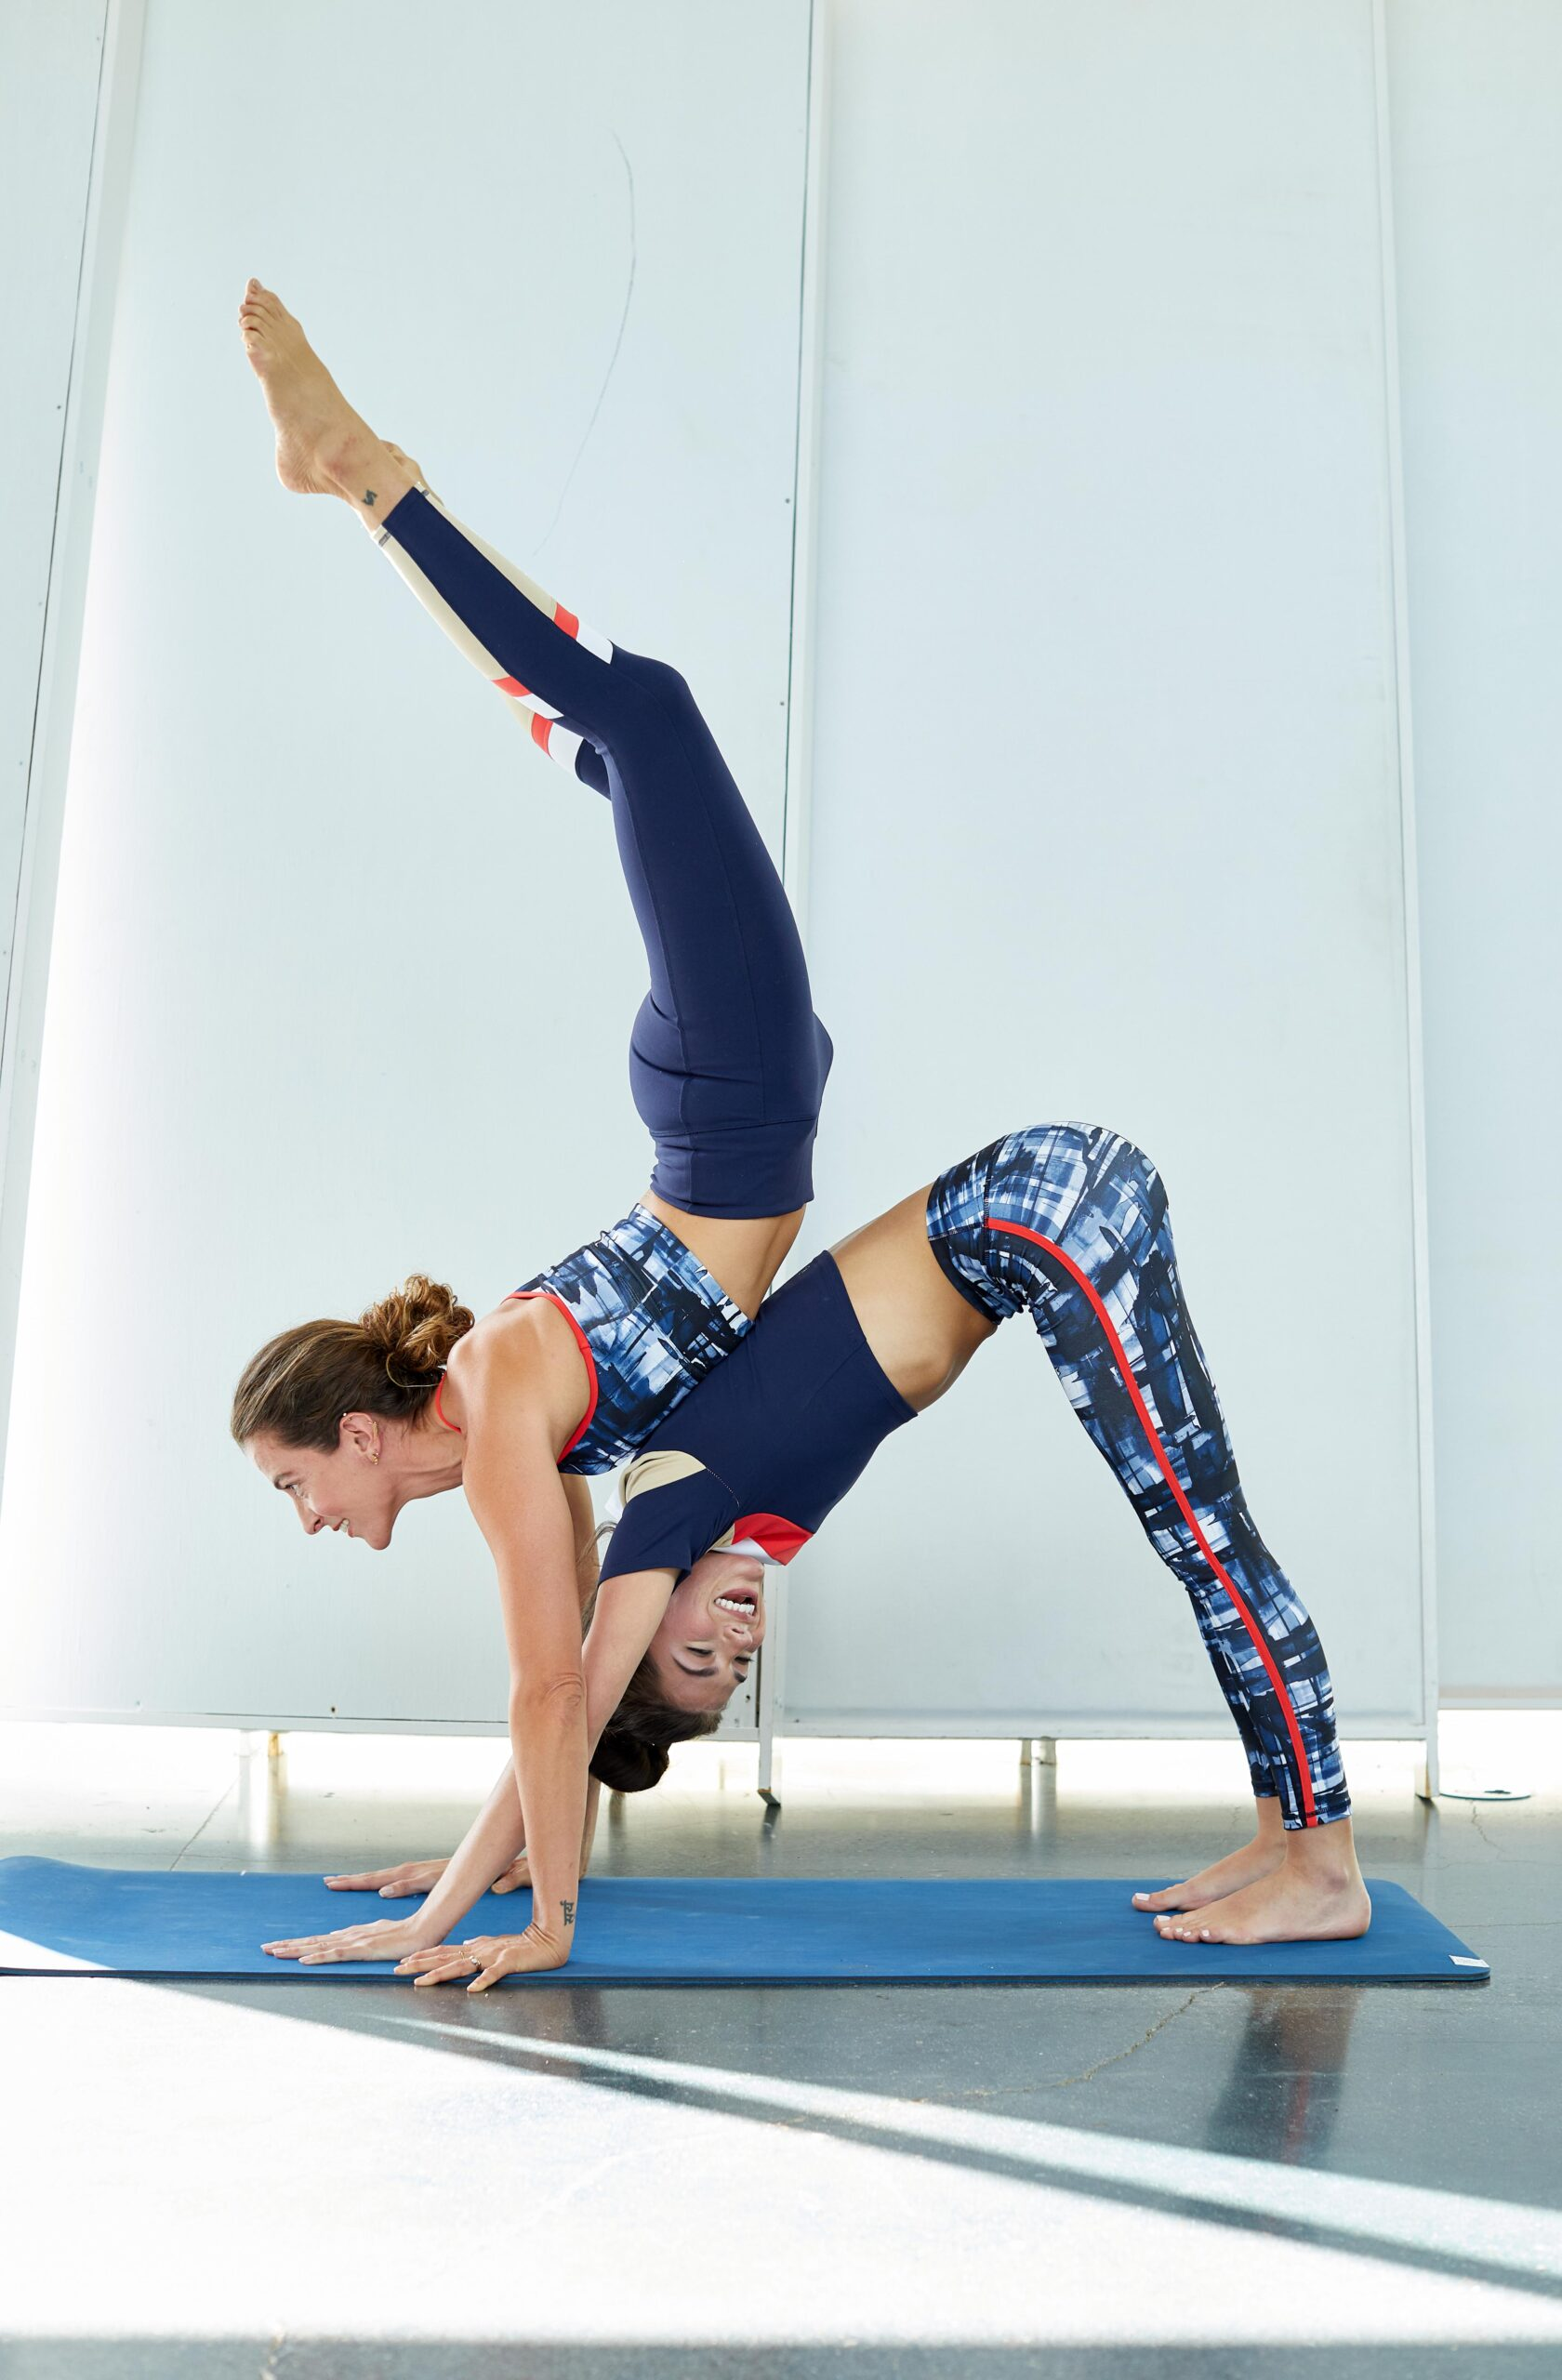 Jason Innes shows one model posed in downward dog and the other model doing a handstand, leaning against her back